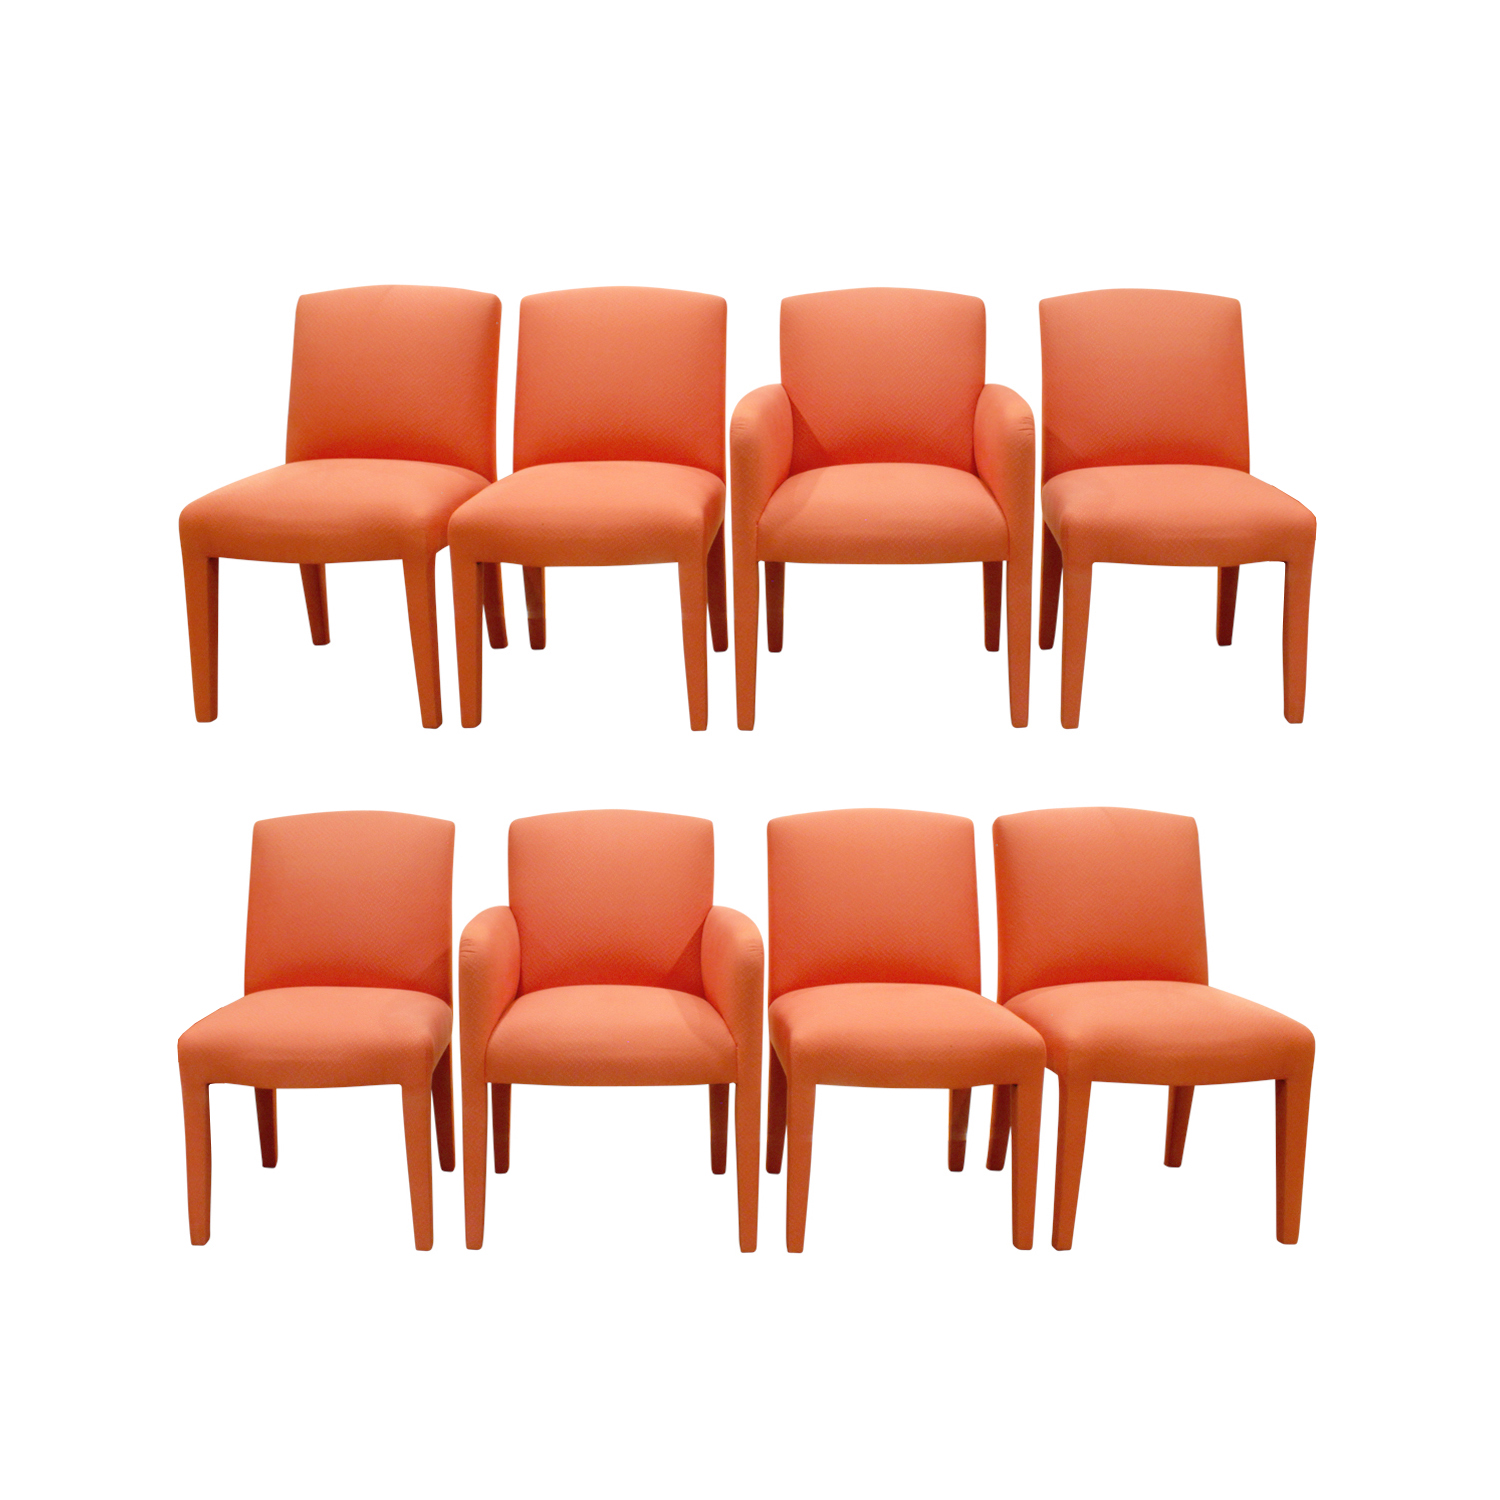 Donghia 120 set of 10 salmon pink diningchairs185 8 main.jpg